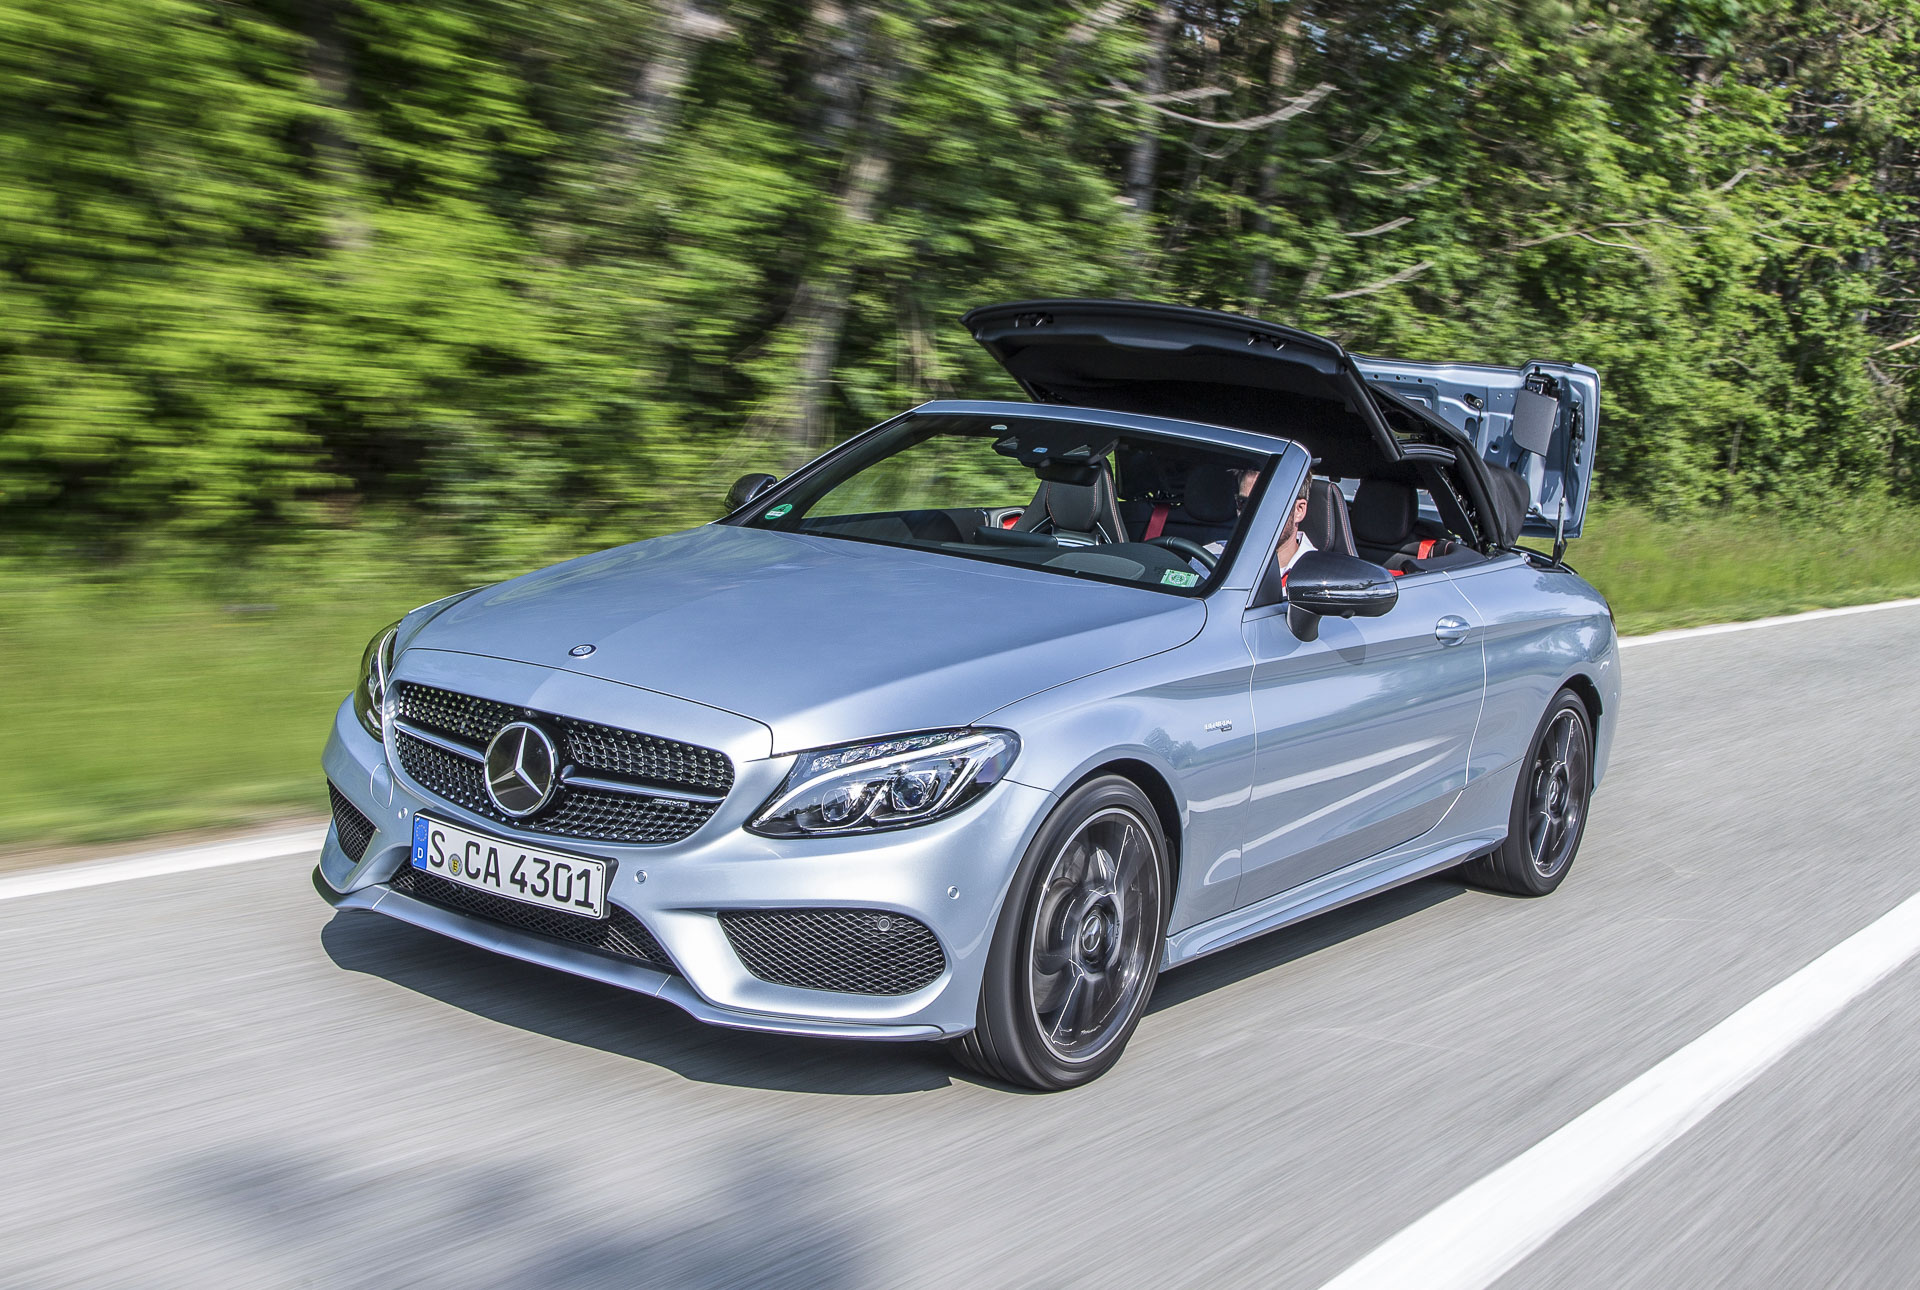 mercedes c 300 und c 43 4matic cabrio test. Black Bedroom Furniture Sets. Home Design Ideas